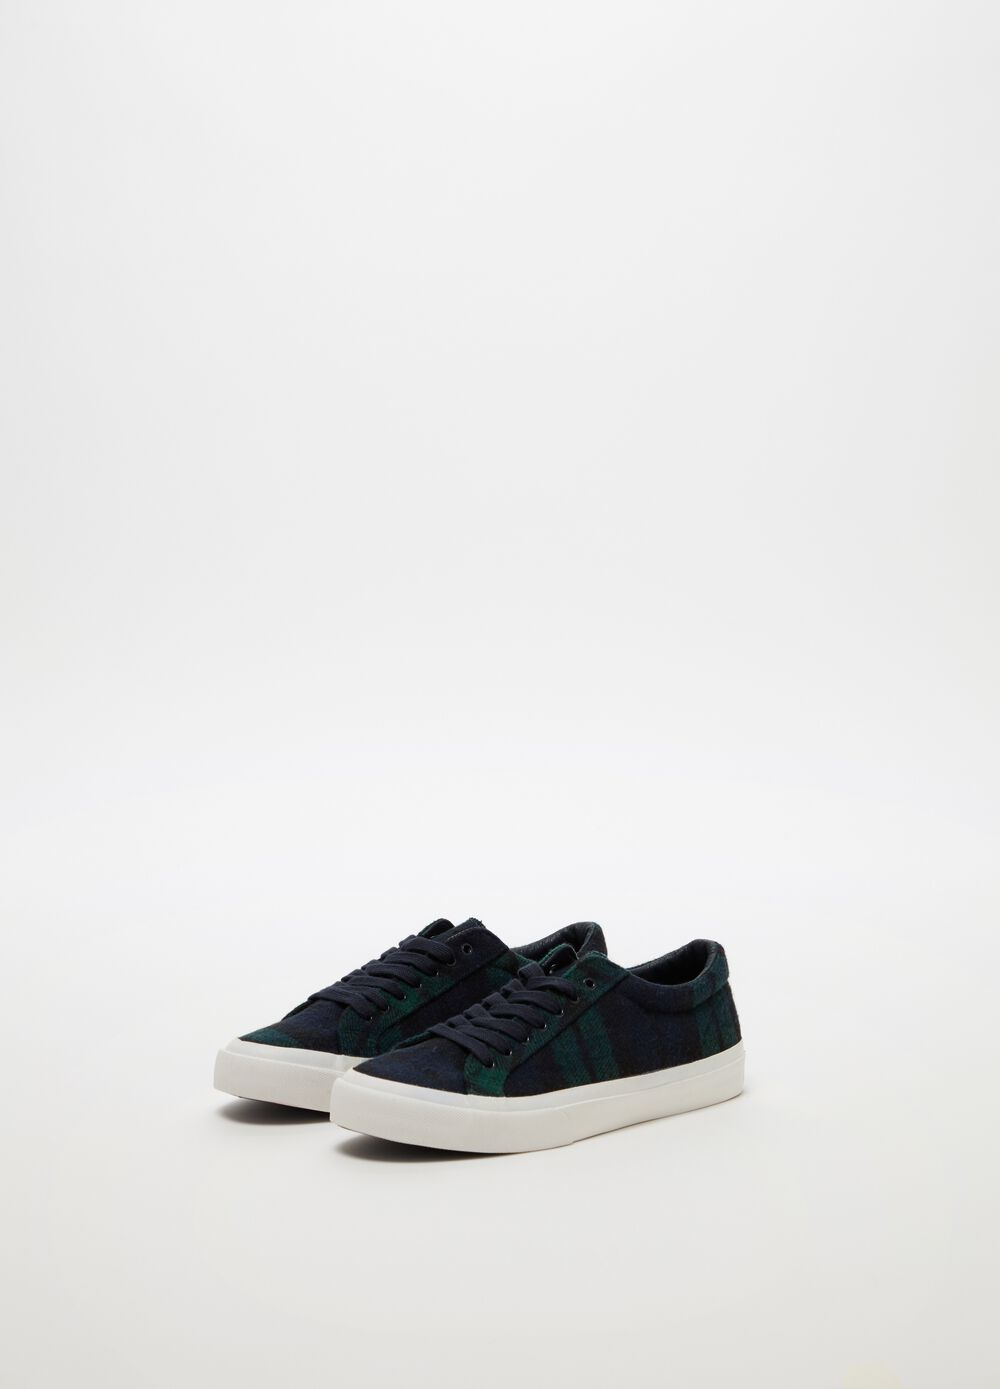 Sneakers with low sole and check pattern